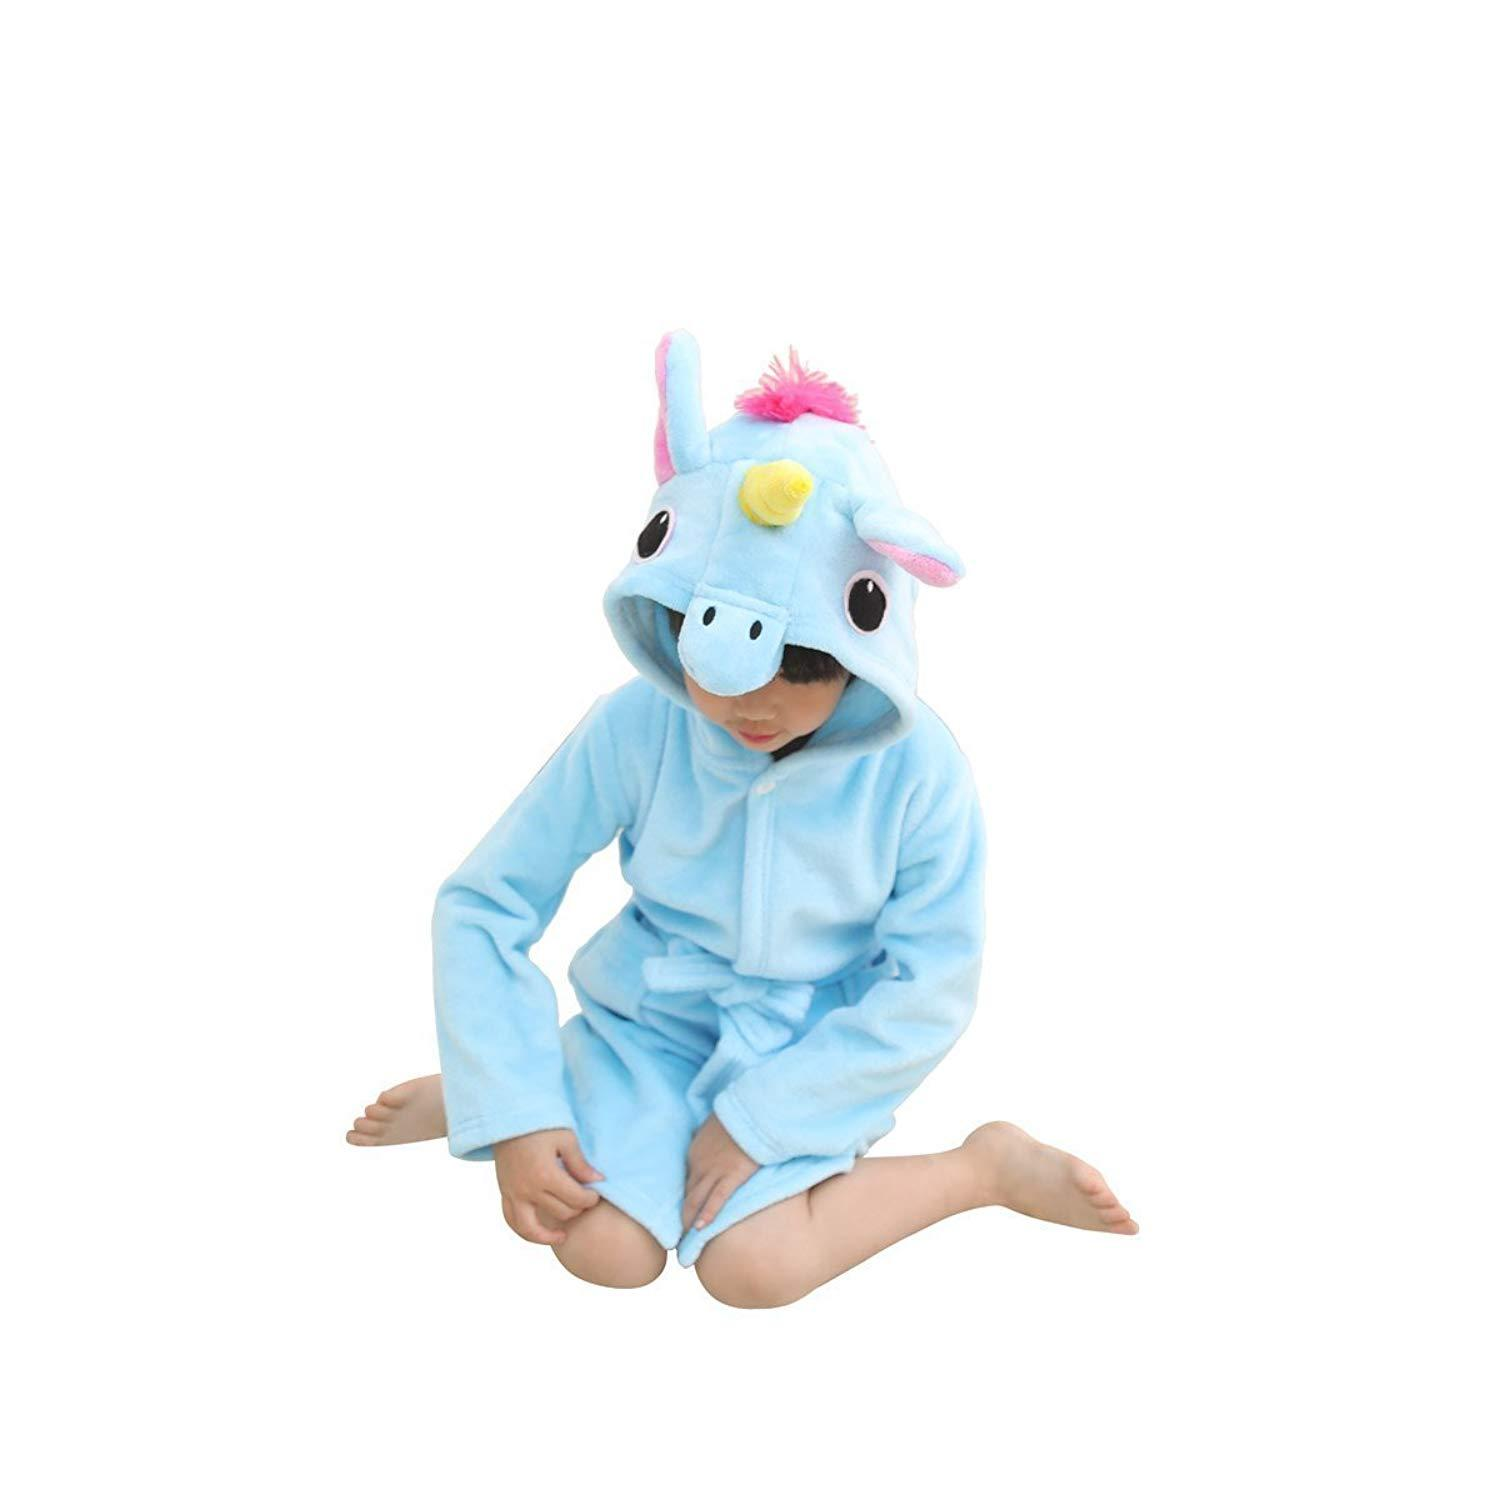 e6c4ad0cfb 2019 Cartoon Kids Soft Bathrobe Unicorn Fleece Sleepwear Comfortable  Loungewear For 0 11Years Children Boys Girls Nightwear Clothing From  Max4072